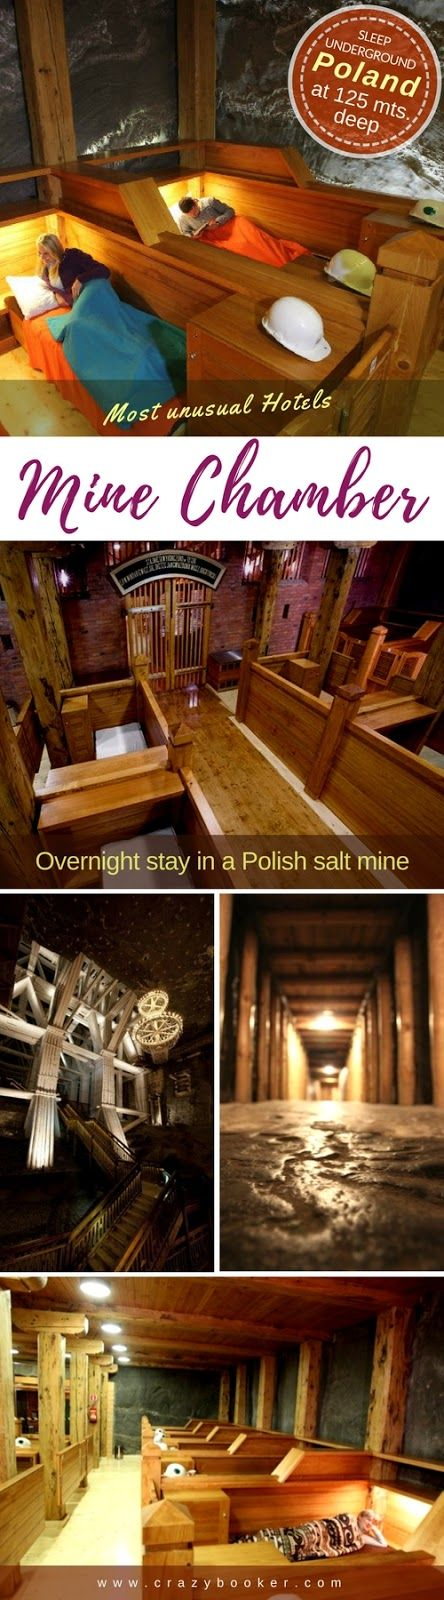 Healthy underground Glamping in the depths of a Polish mine pit – Crazybooker.com | Unique Hotels of the world | We follow back!